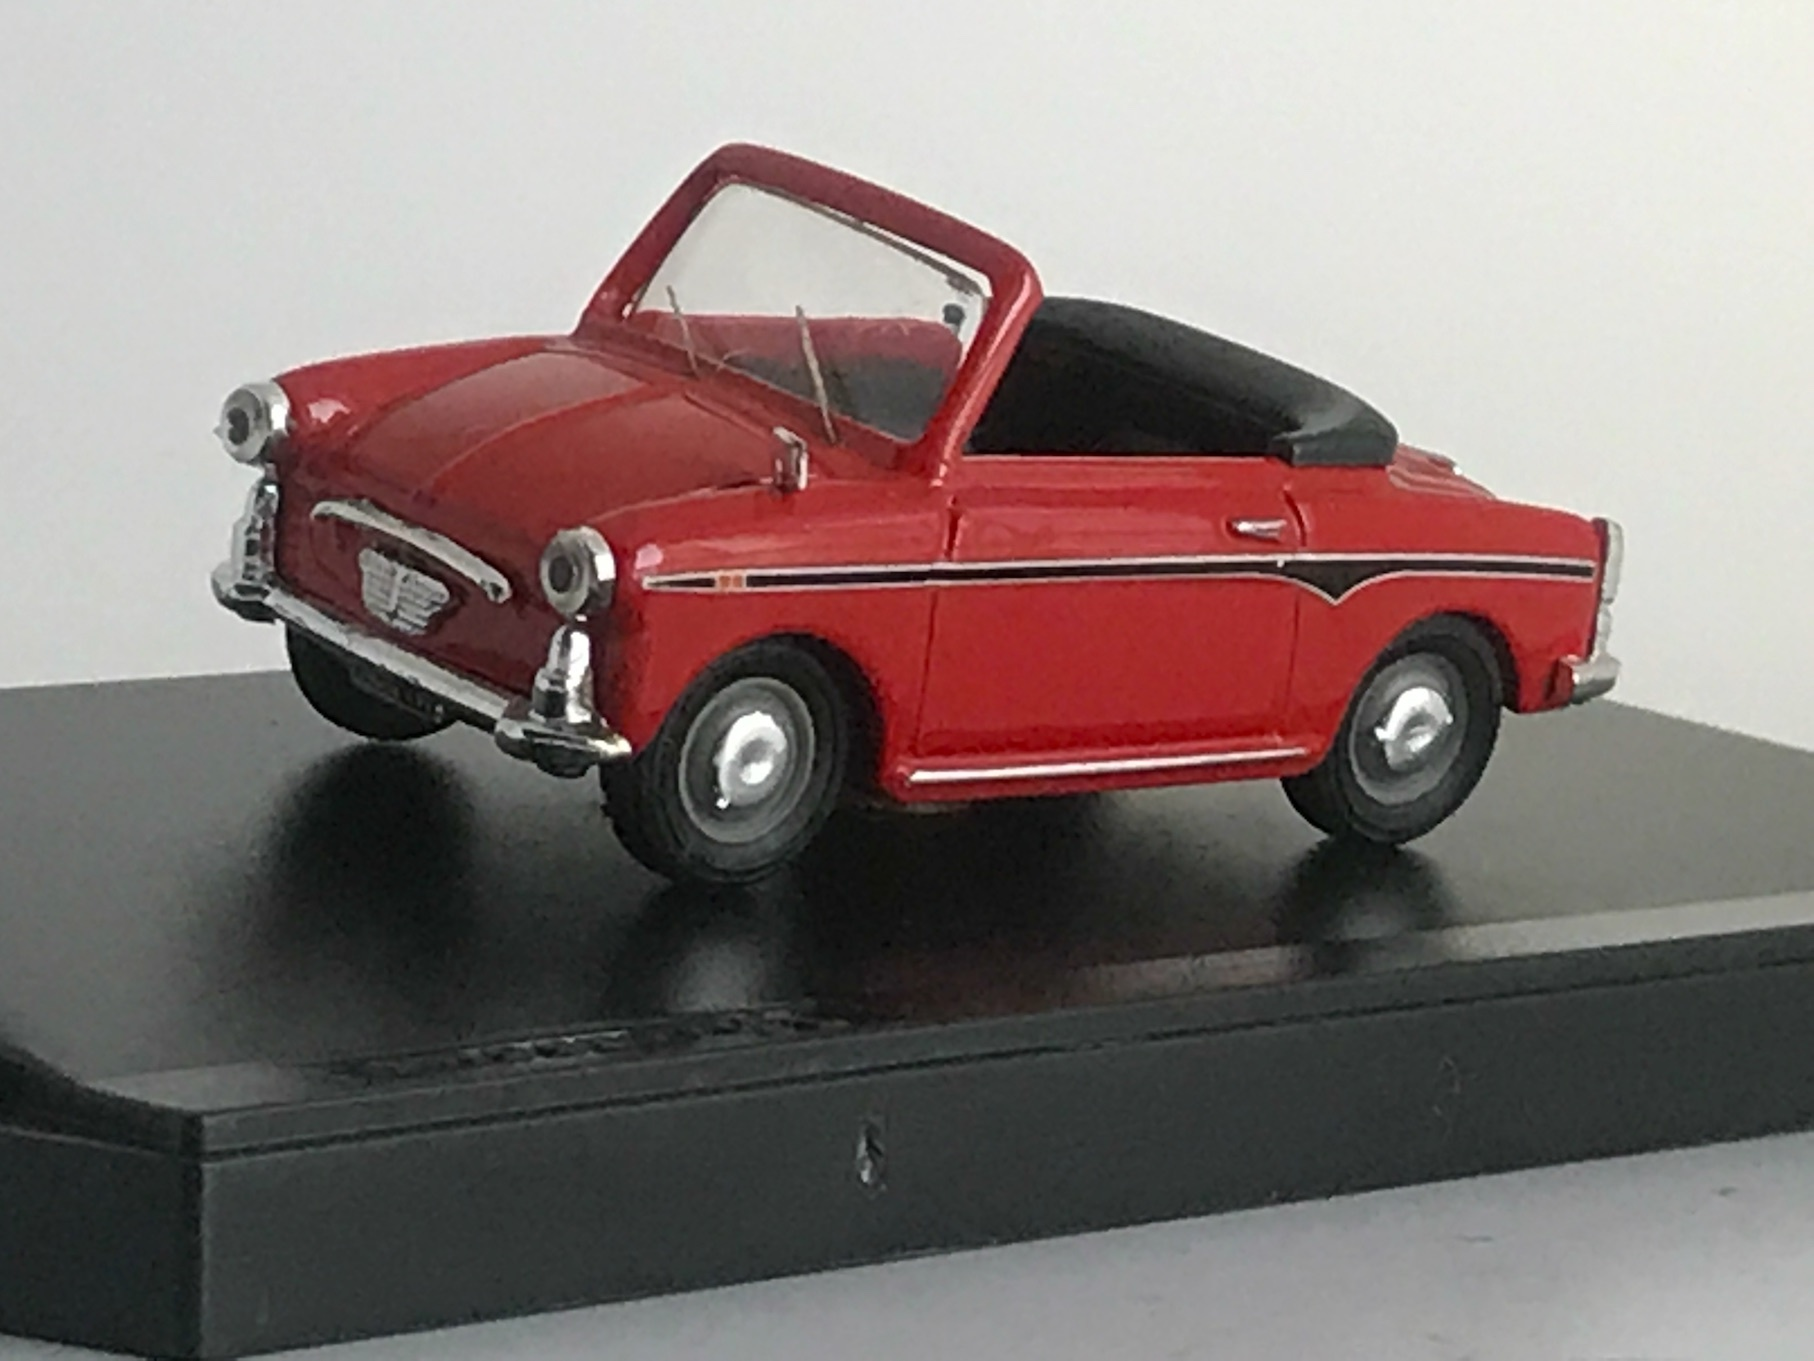 AUTOBIANCHI BIANCHINA CABRILET OPEN 【1/43】【PROGETTOK、MADE IN ITALY】